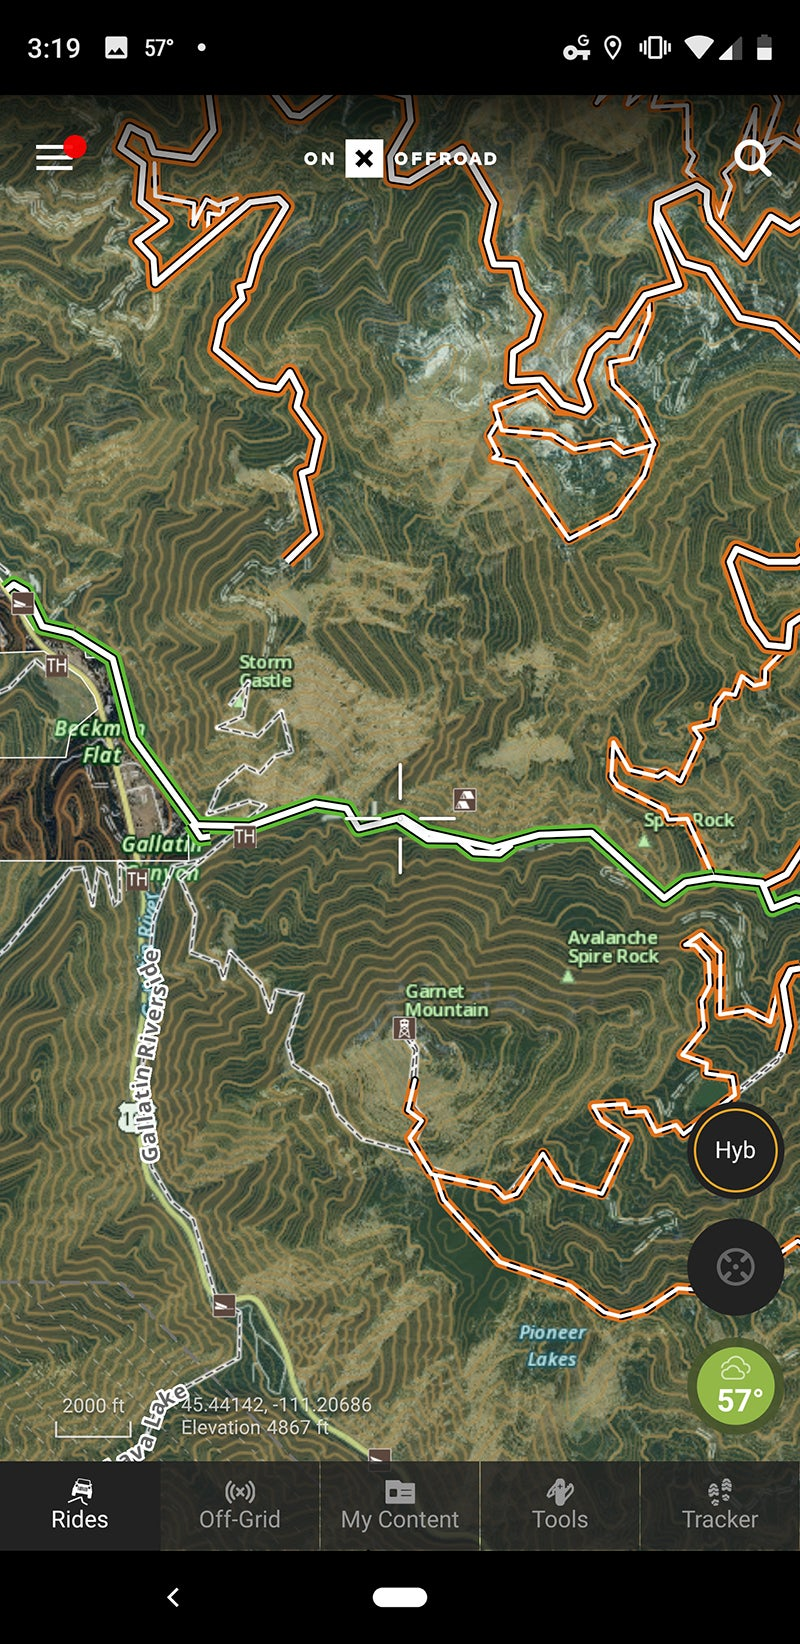 Here's the general area I'd like to go. The trails that are currently open are green, and the closed ones are orange. To see when those open, I just have to click on them.